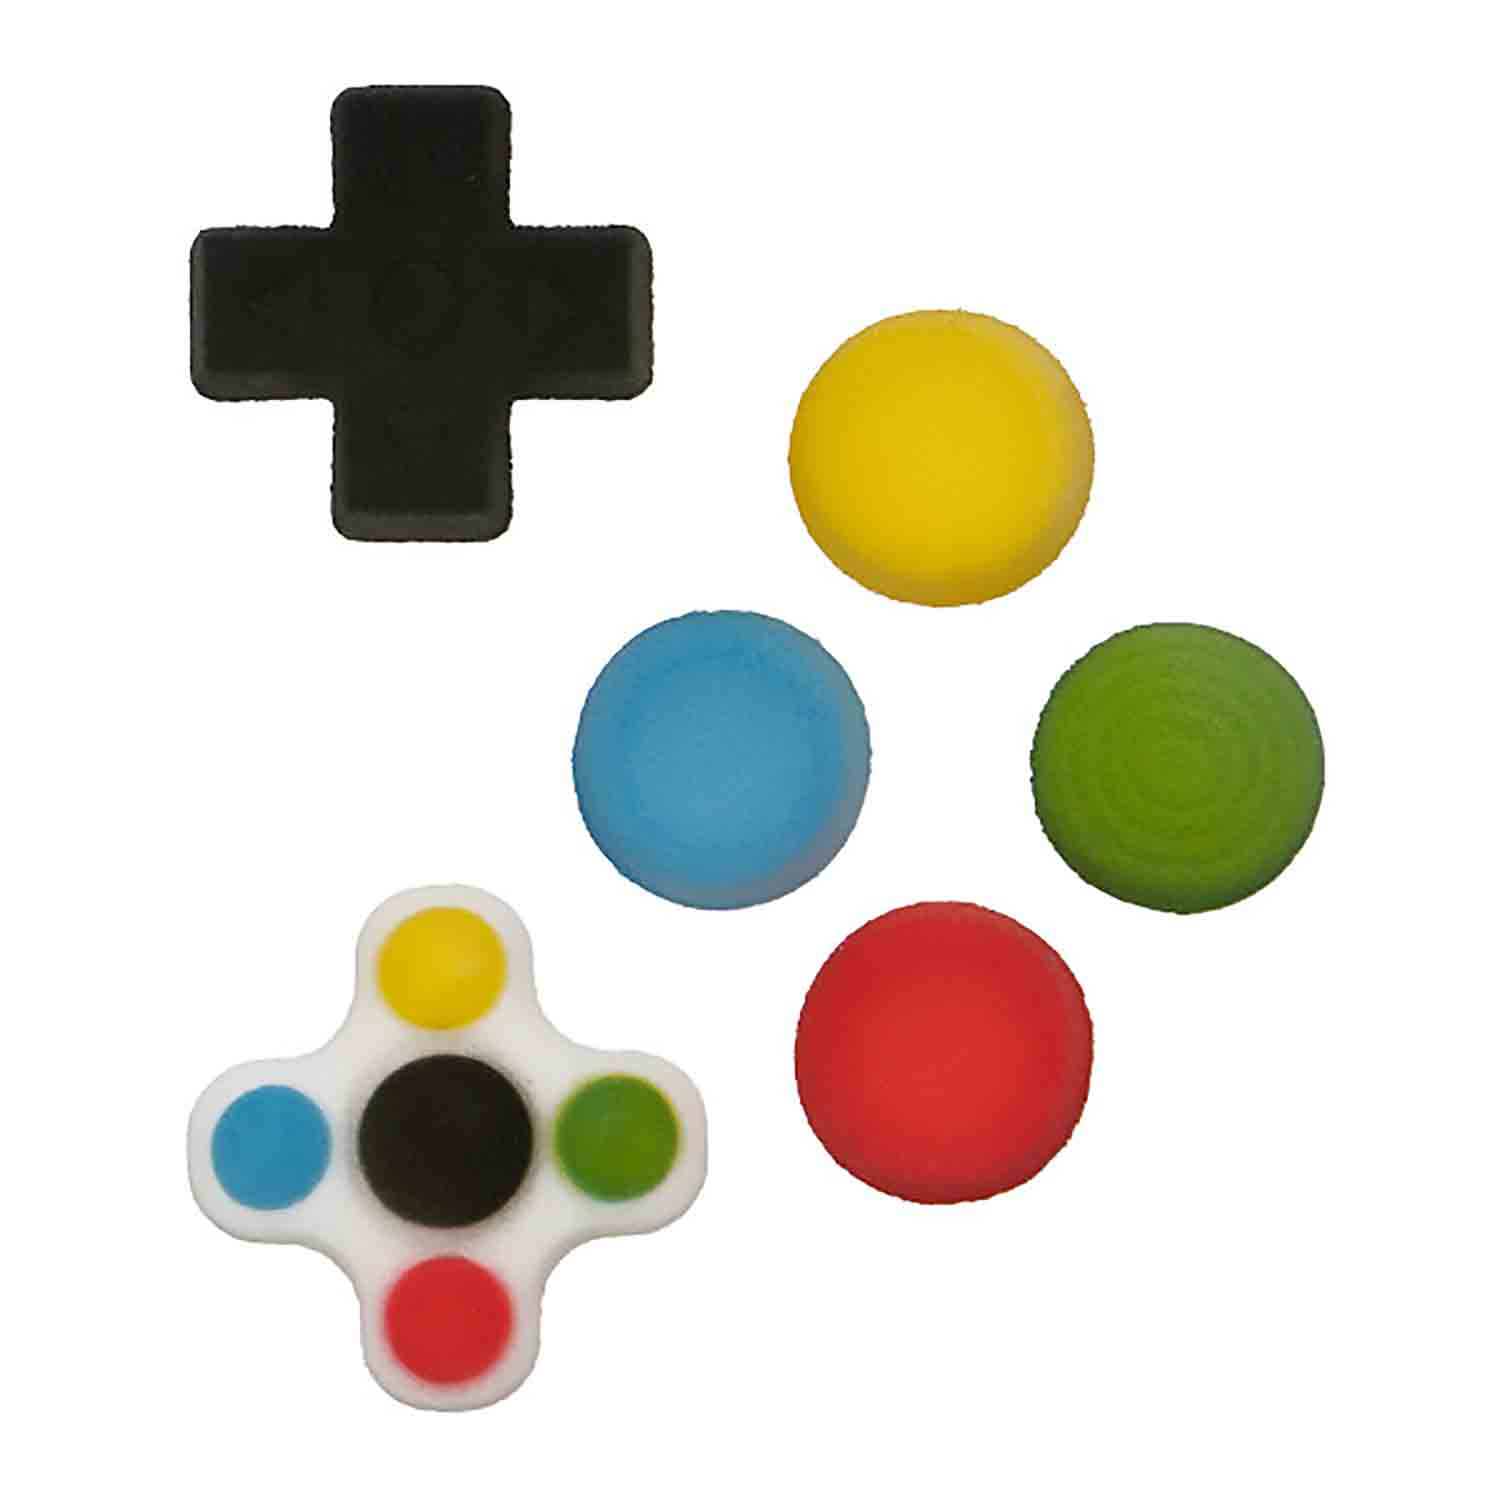 Sugar Layon - Video Gamer Button Assortment